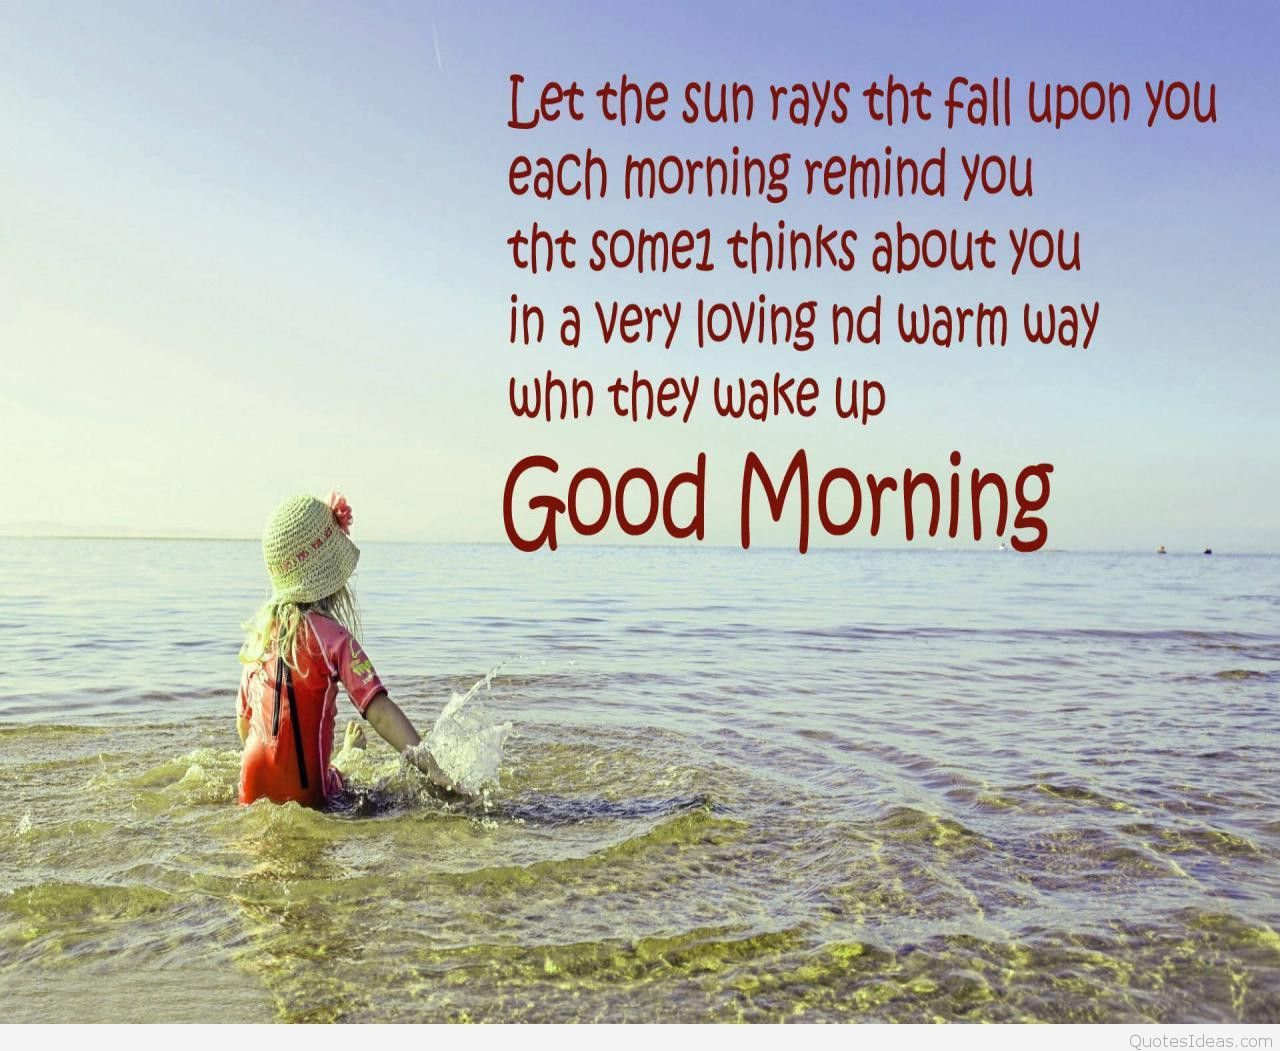 the best Good Morning Quotes wishes for him and her These beautiful good morning quotes and images are funny sweet romantic and inspirational